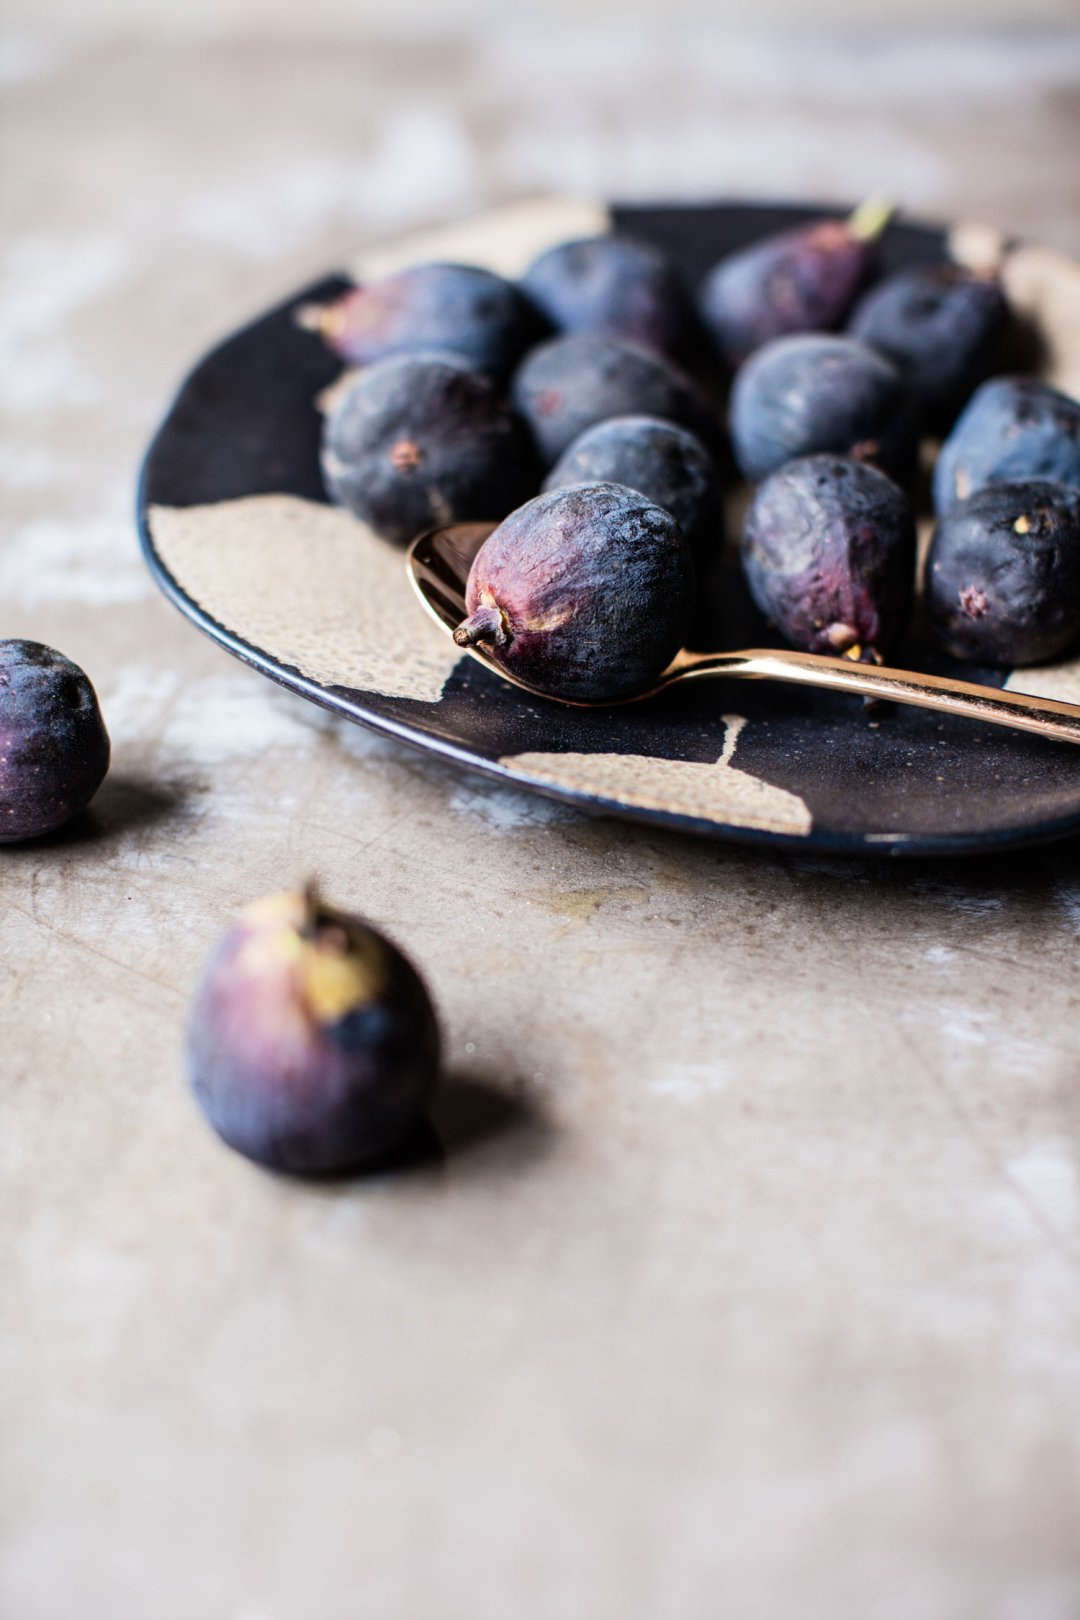 A platter of fresh black figs with a rose gold serving spoon